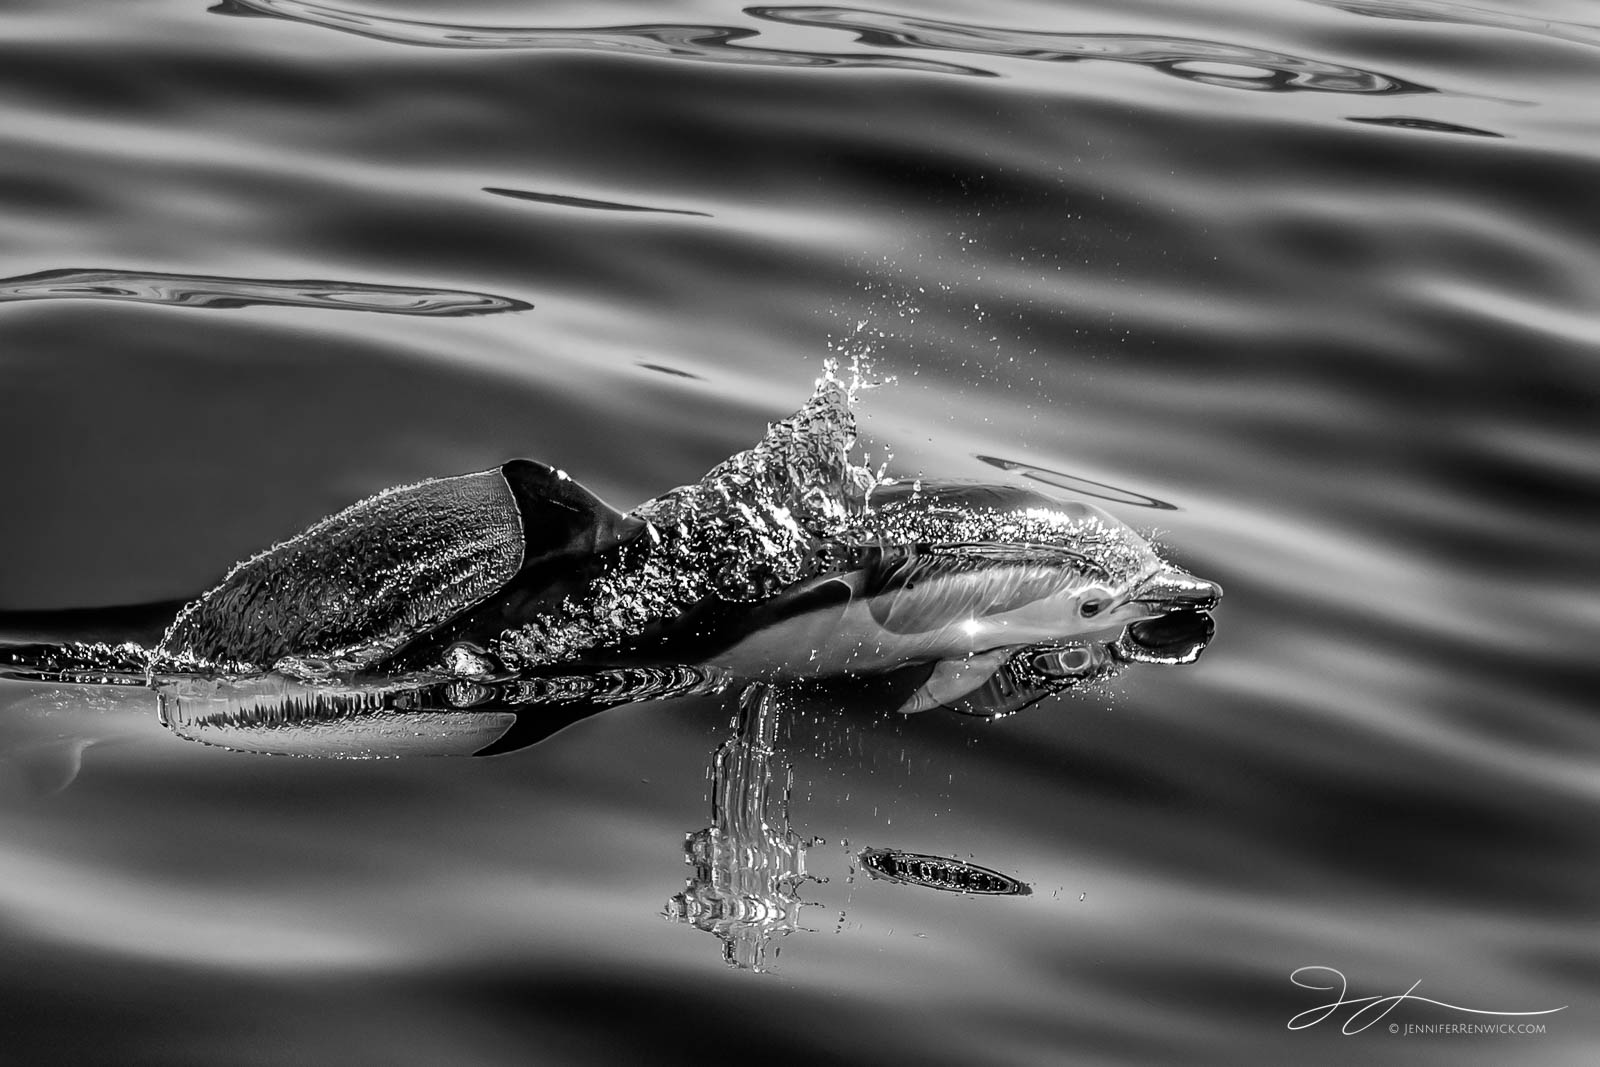 A young common dolphin calf surfaces in a splash of water.